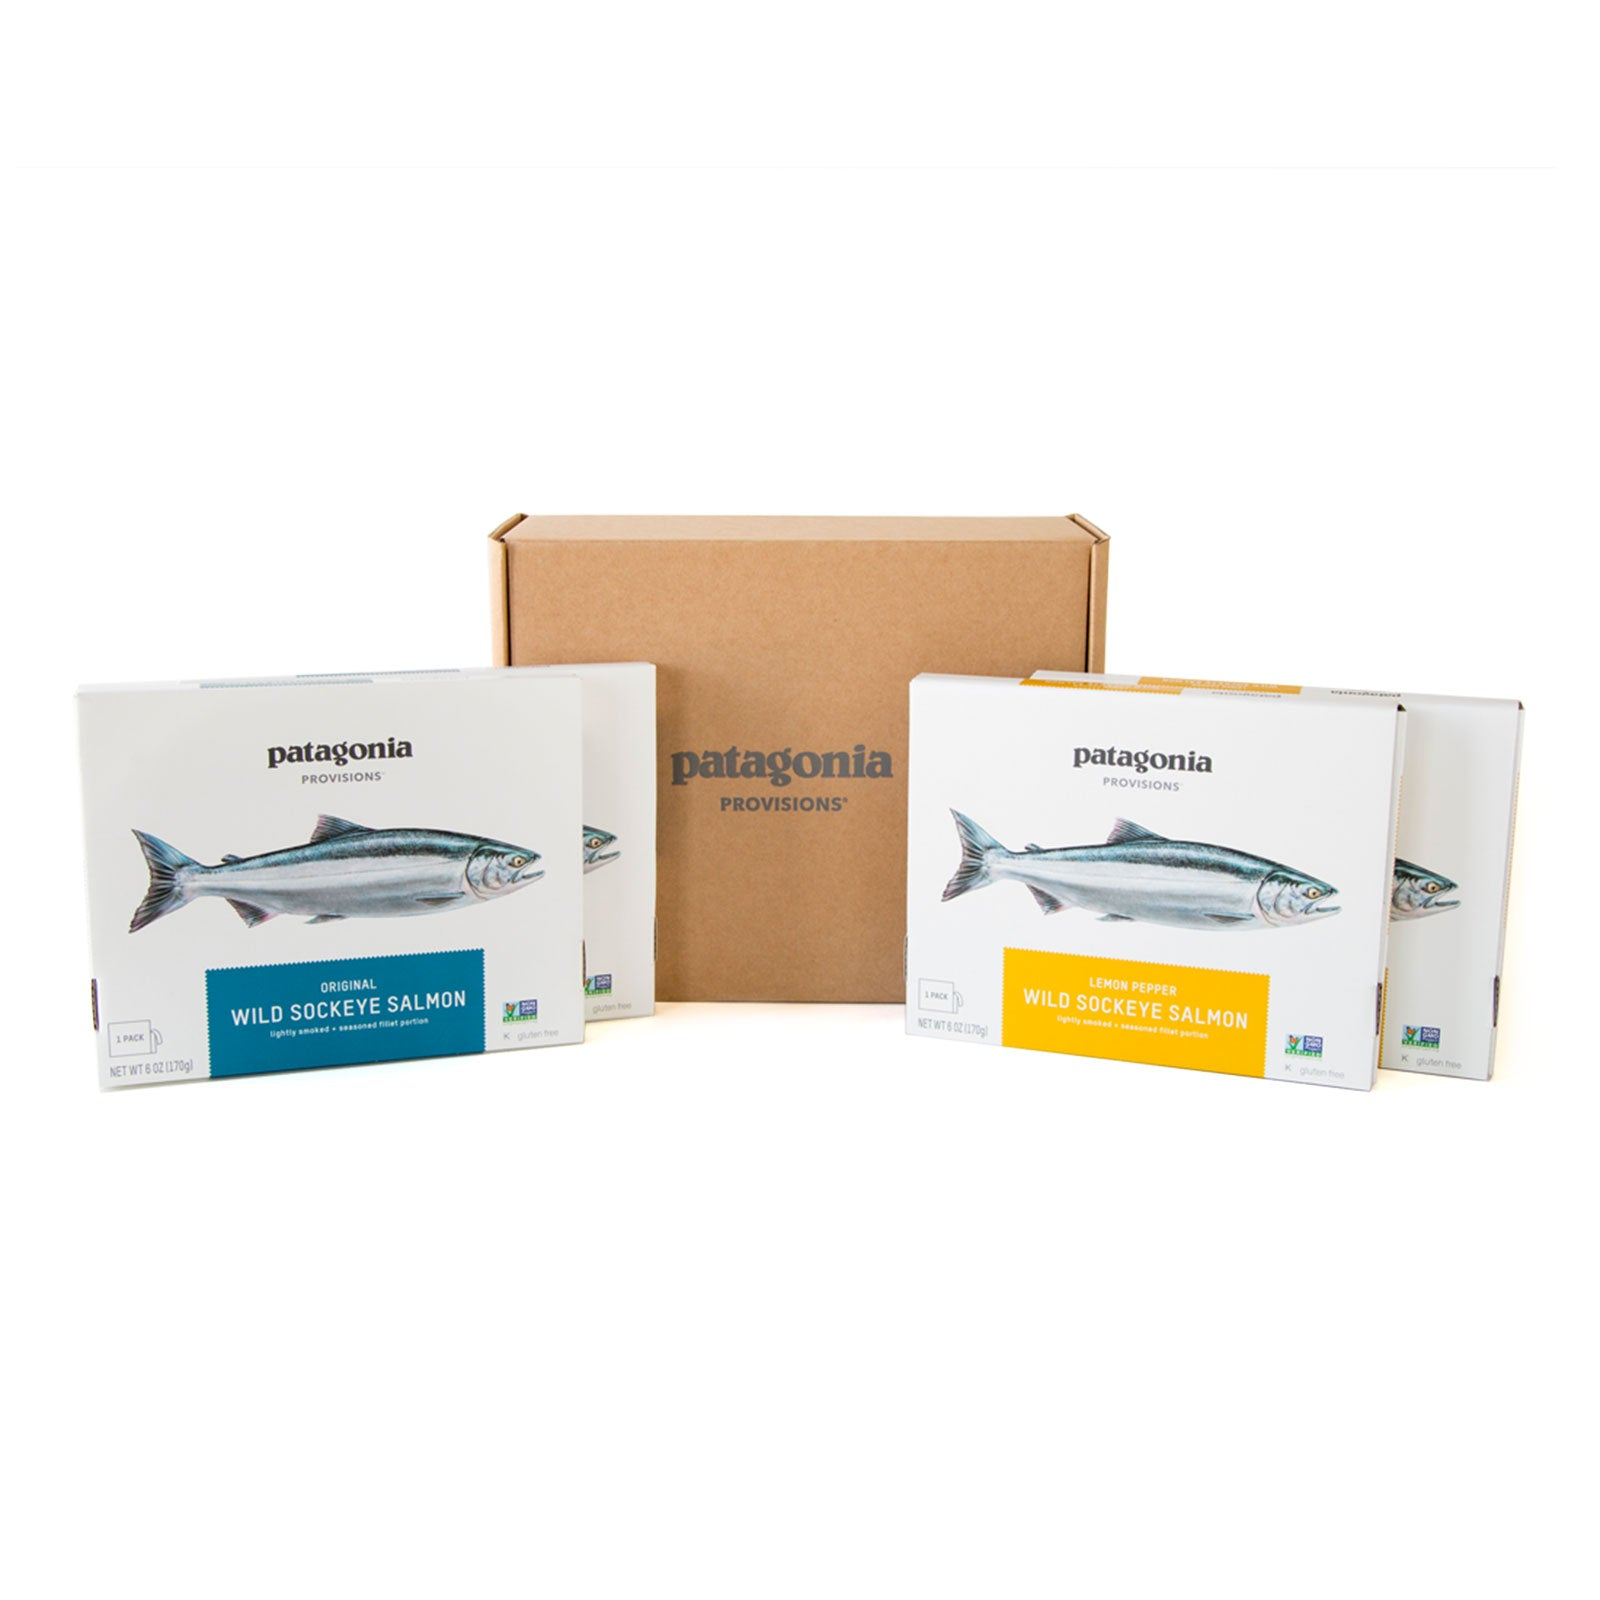 Two boxes each of Patagonia Provisions Wild Sockeye Salmon Original and Lemon Pepper Flavor